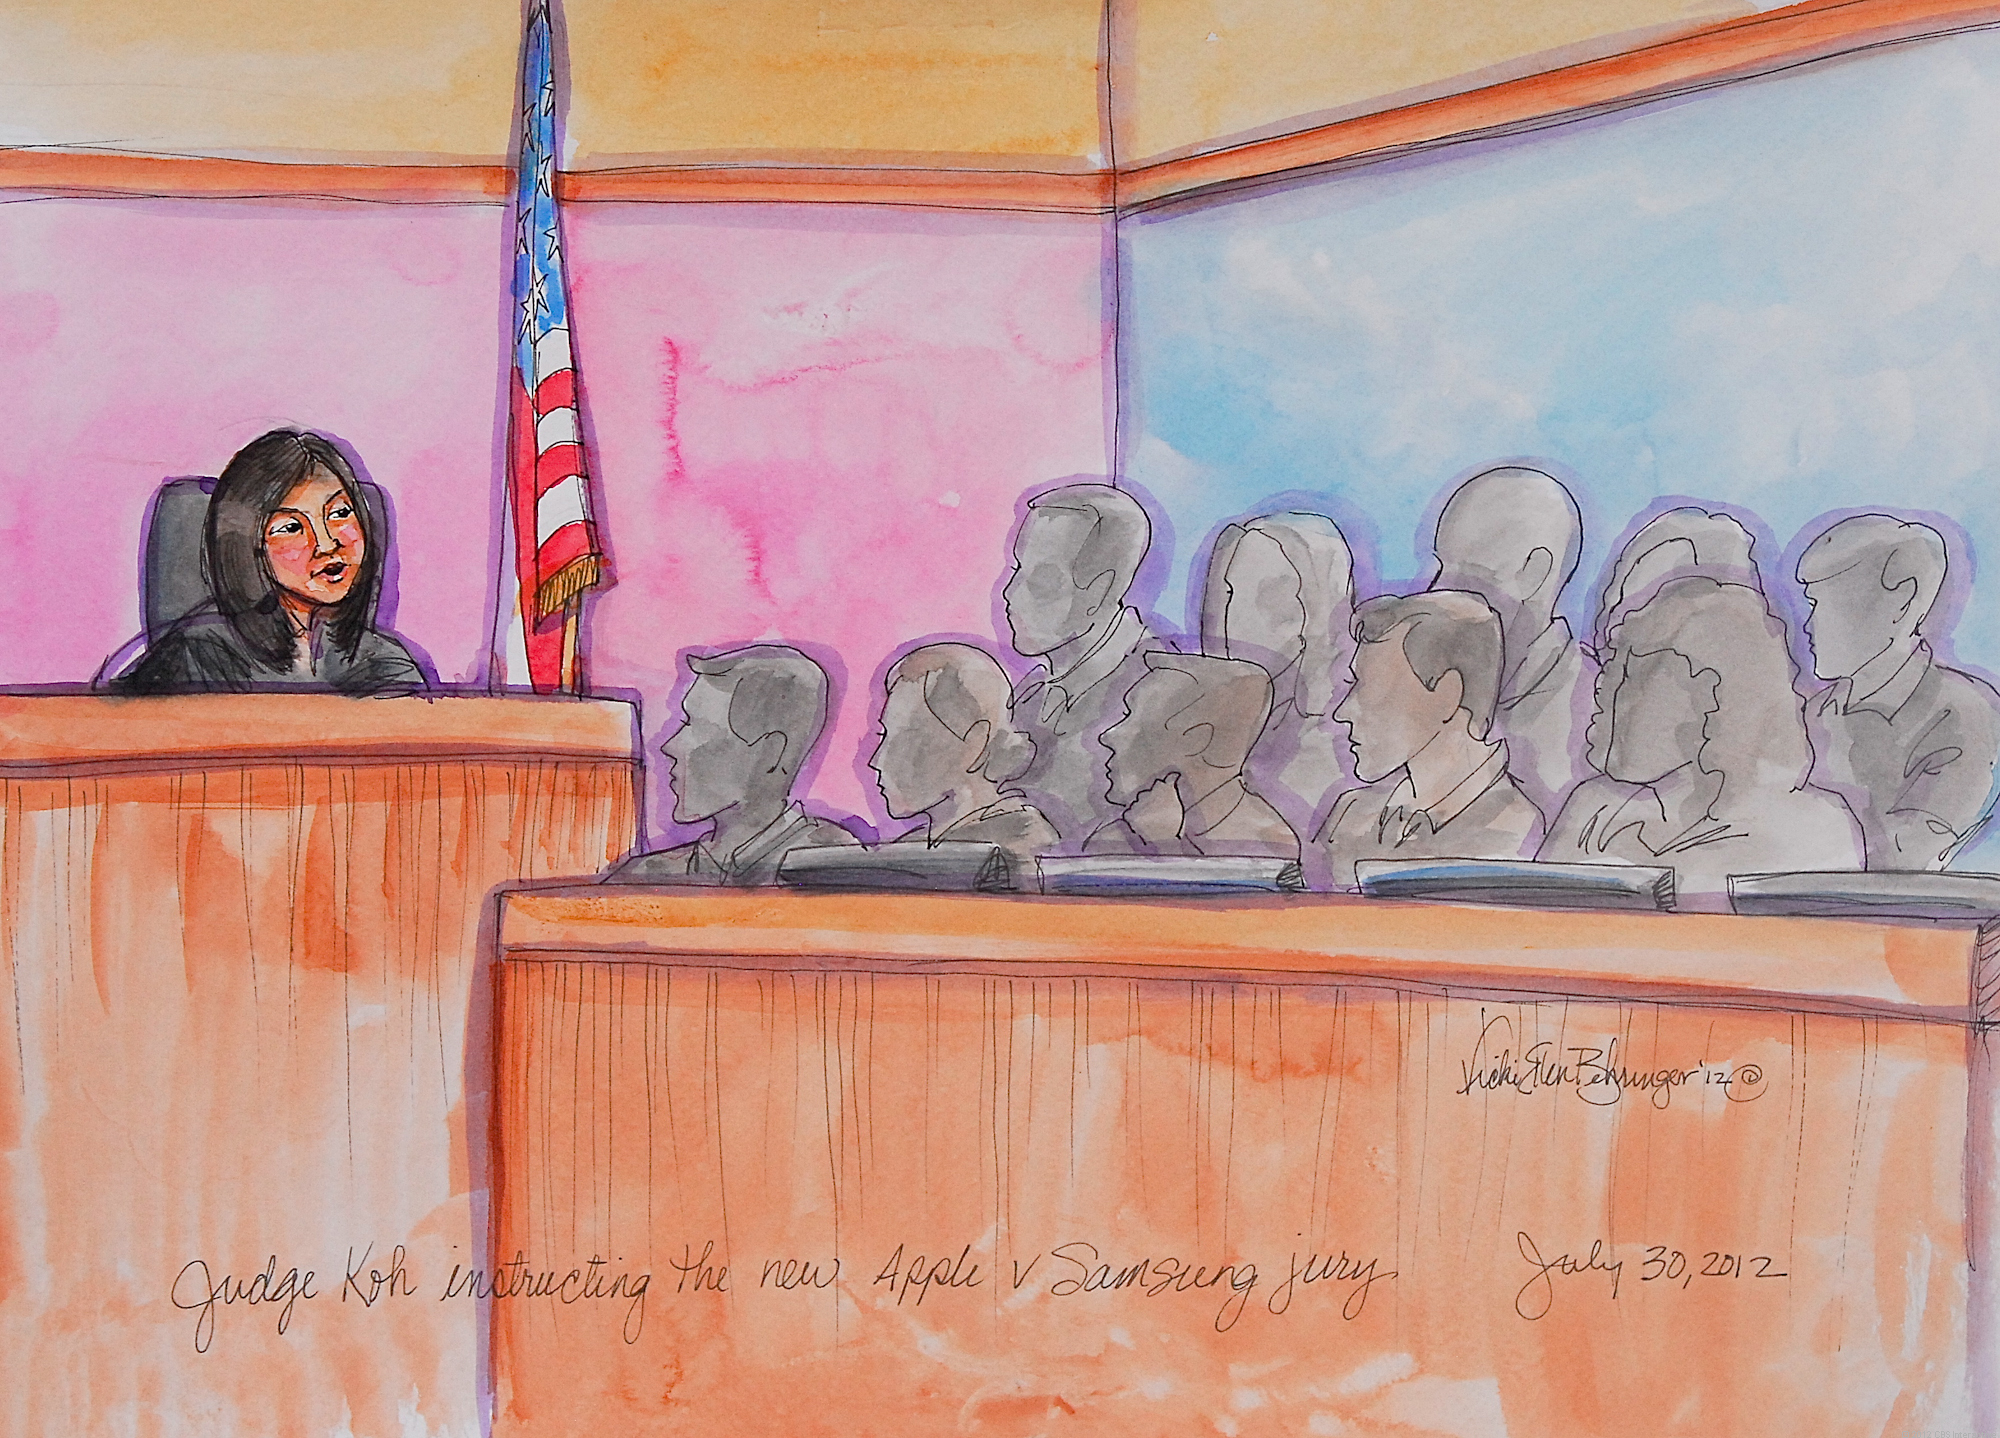 U.S. District Court Judge Koh speaks with jurors earlier in the trial.